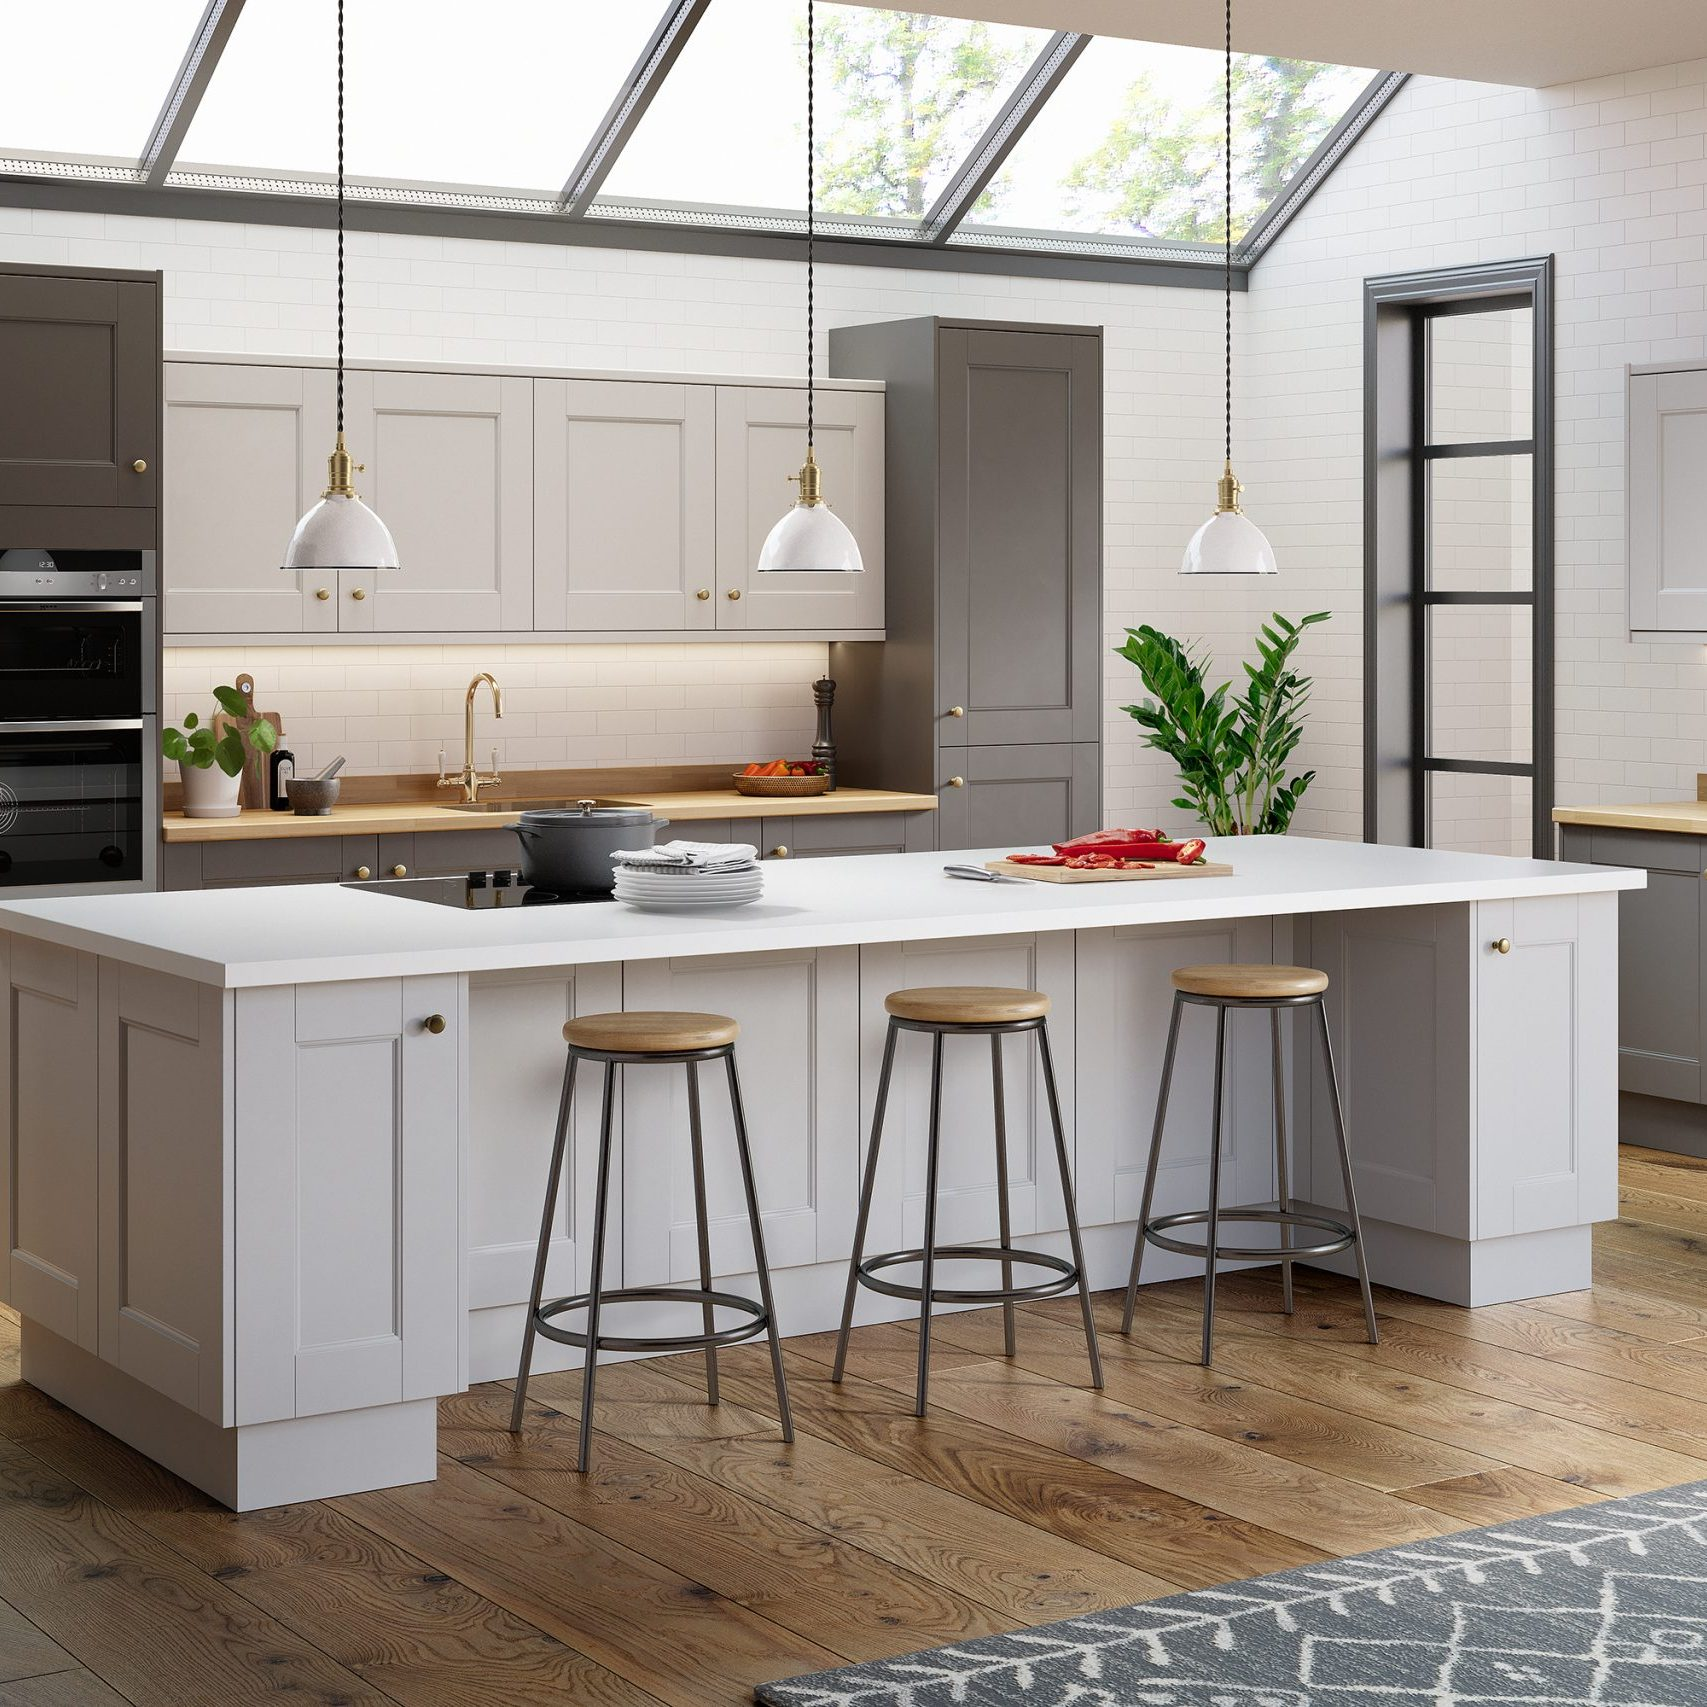 Kitchen with oakwood flooring